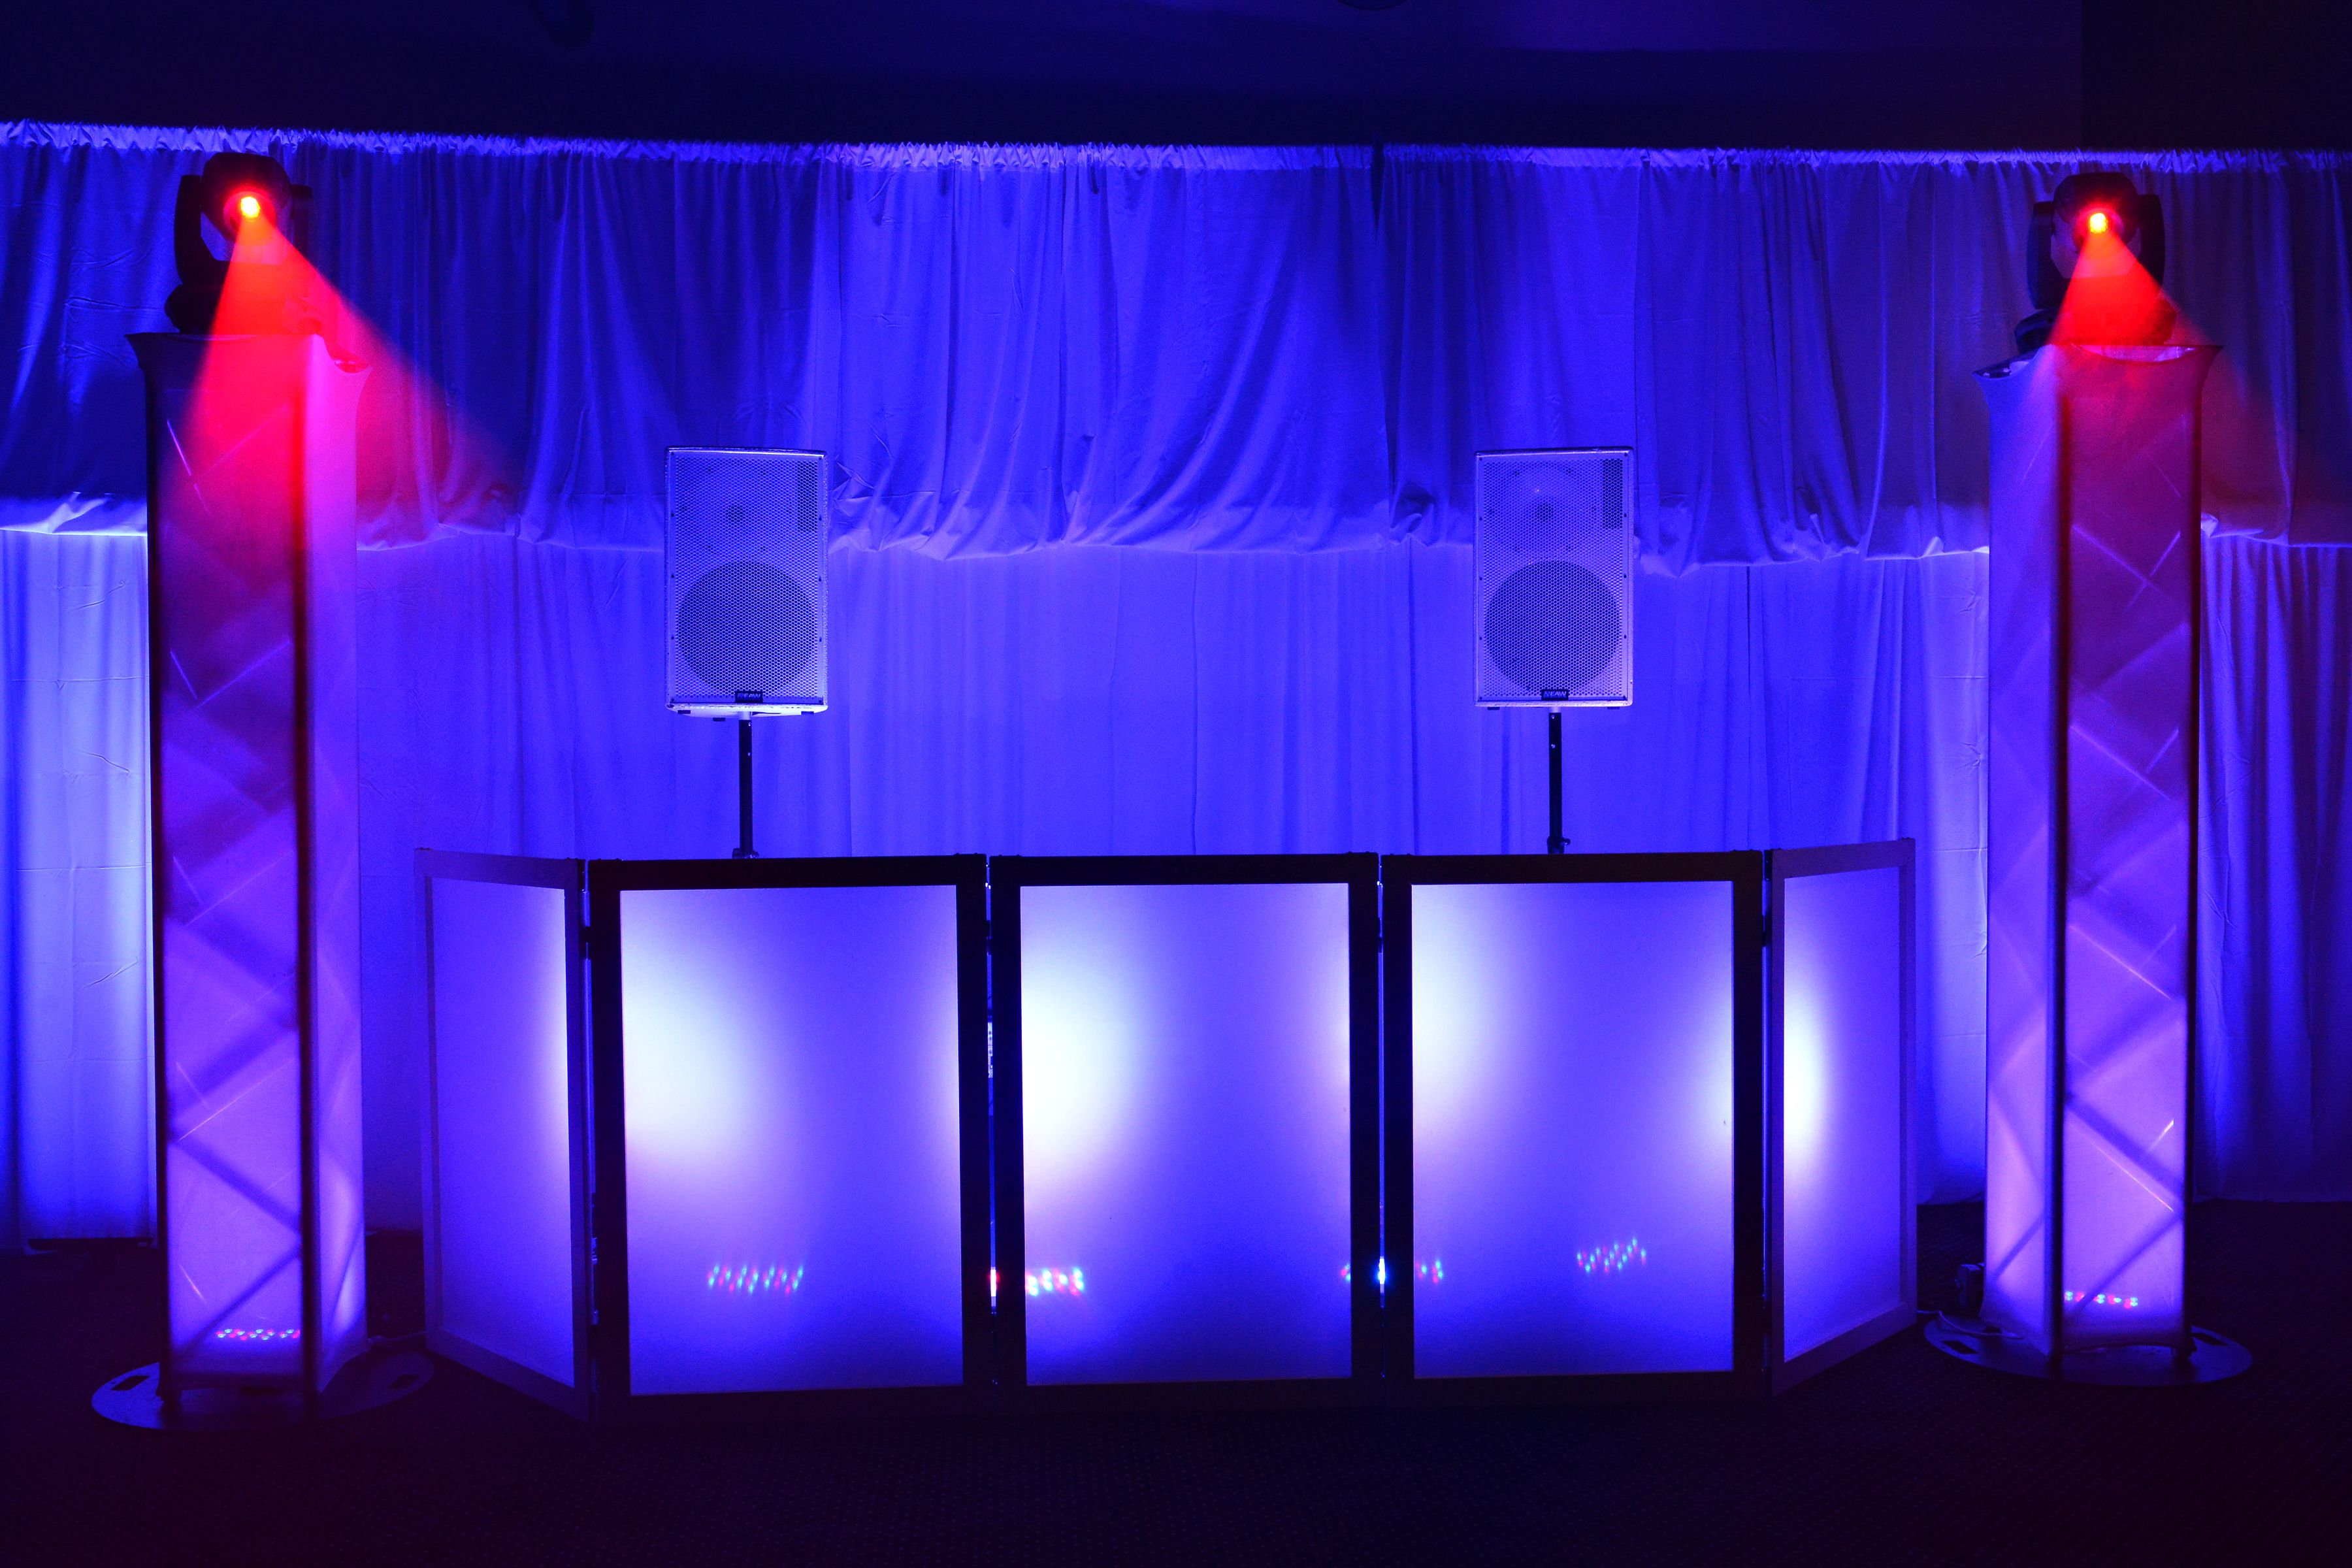 Tommy S Tunes Dj Entertainment Long Island New York Wedding New York Wedding Photo Booth Island